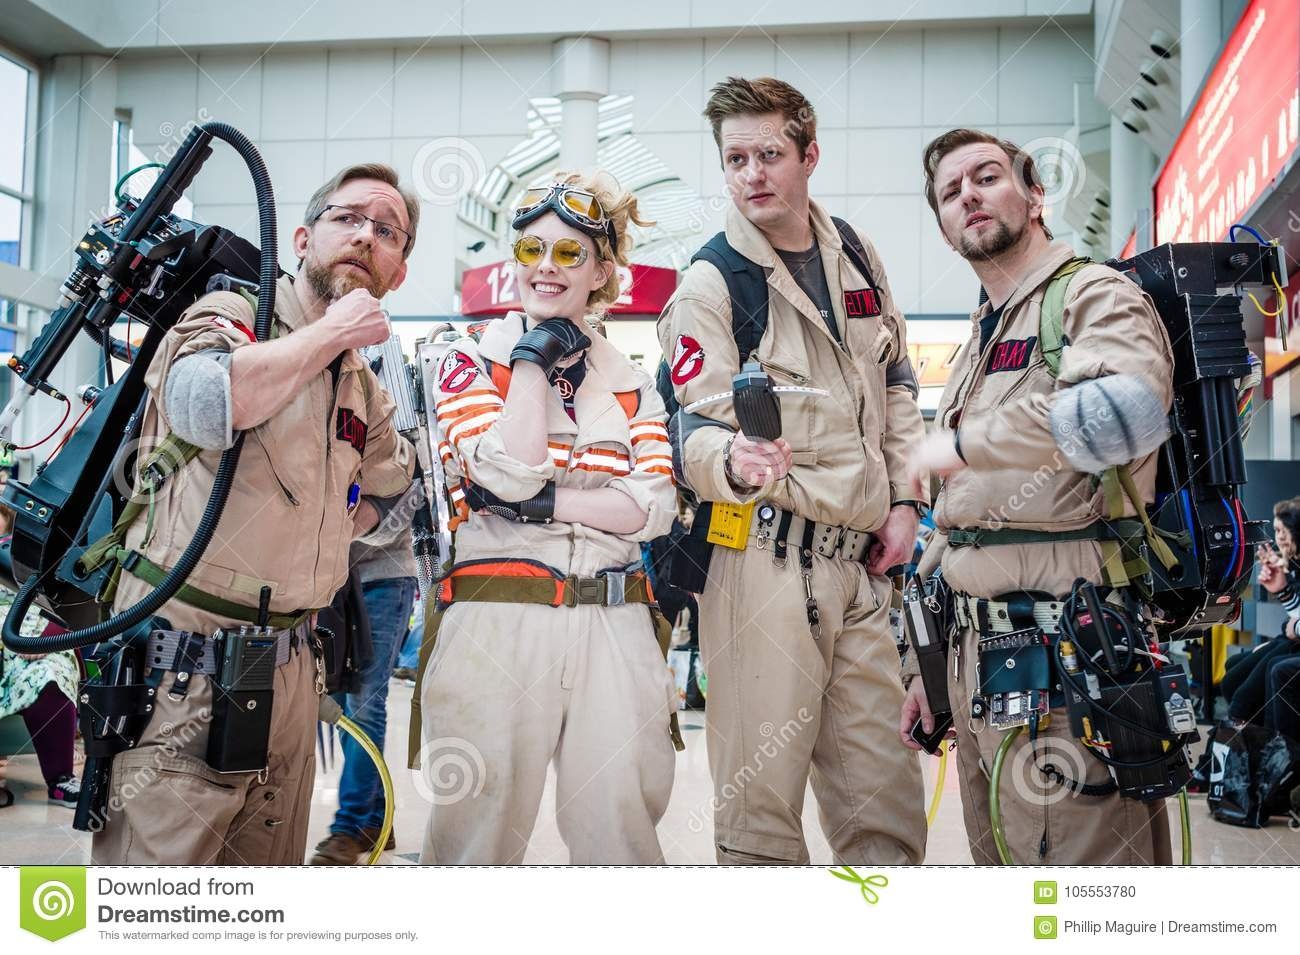 Ghostbusters Charaktere